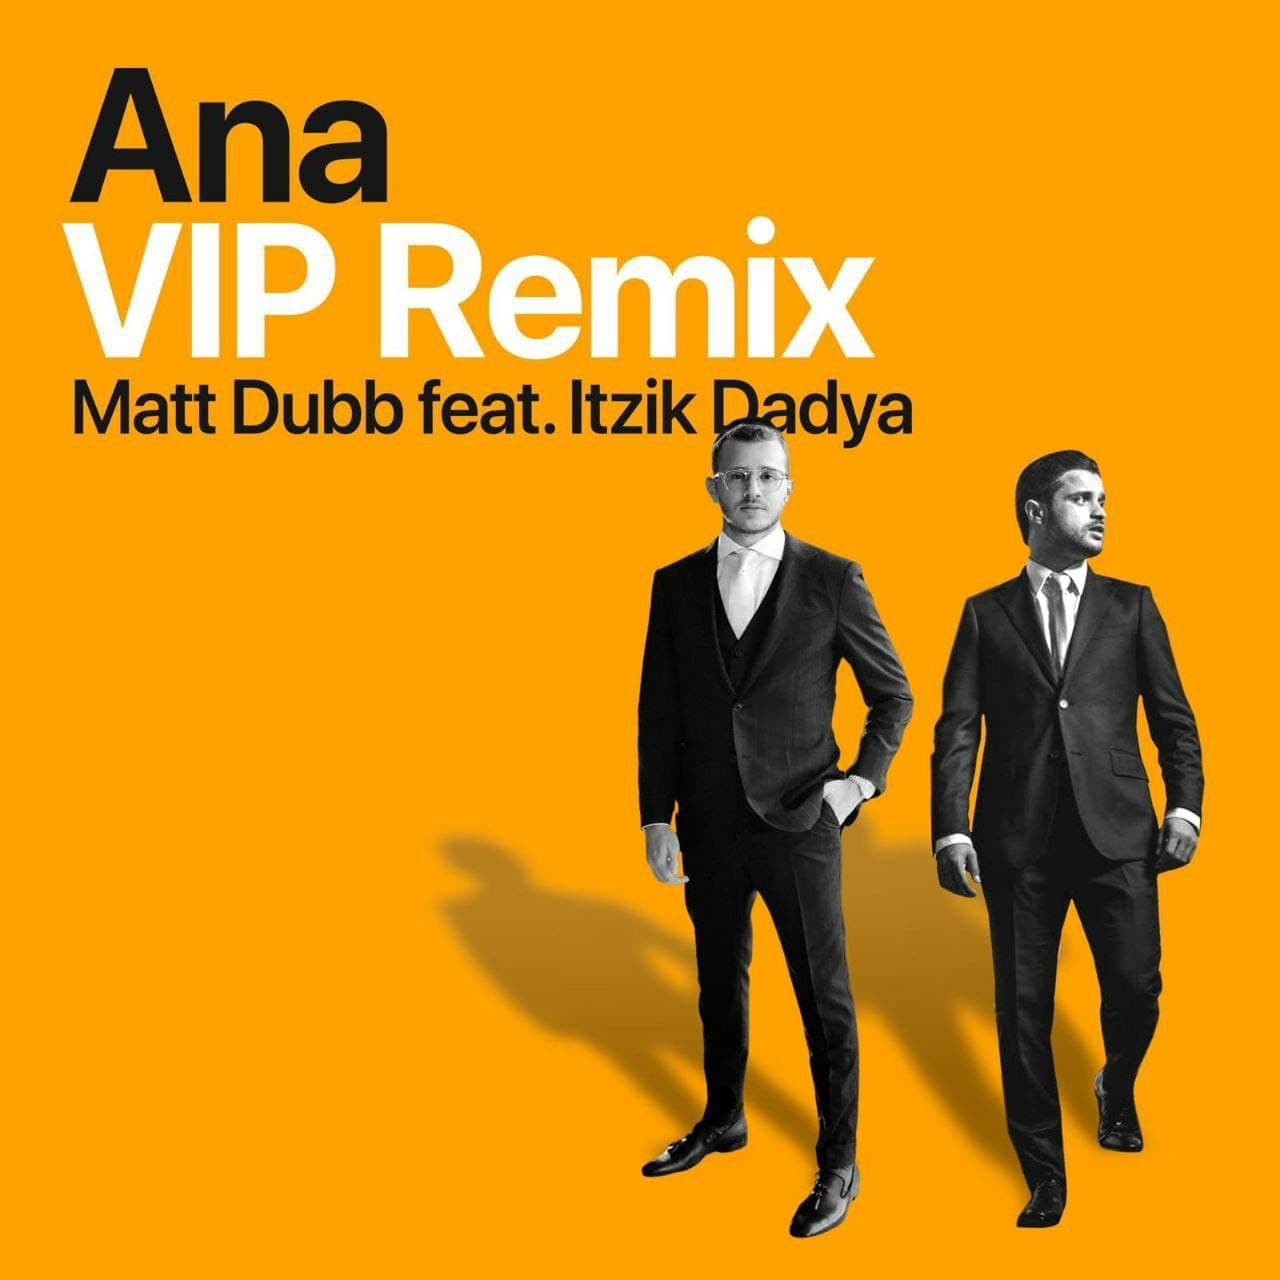 Ana VIP remix (single)